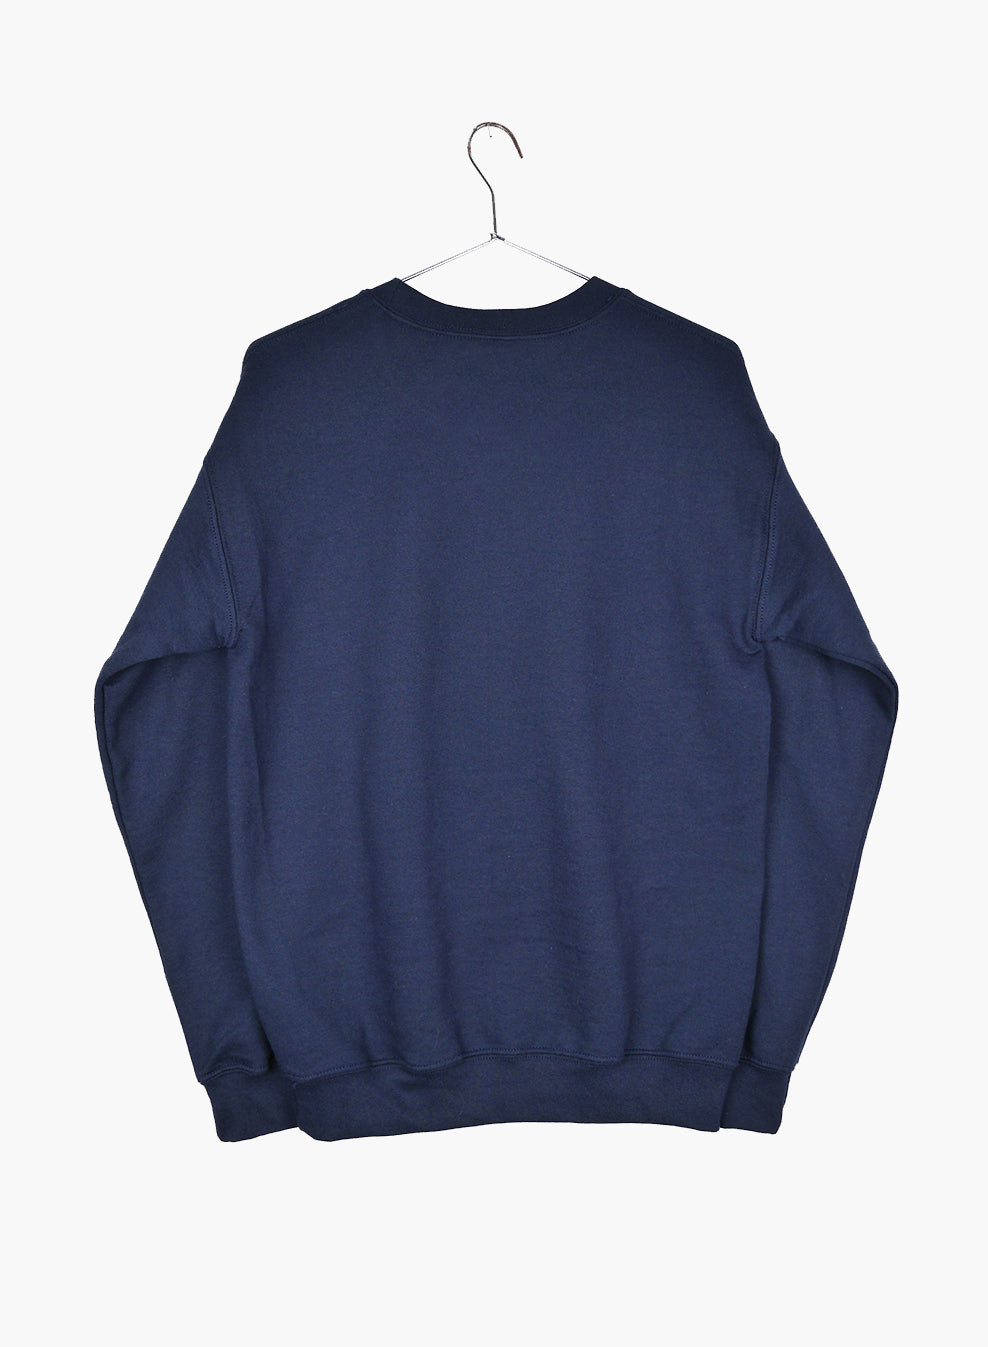 Surfin Estate coordinates logo crewneck, navy color